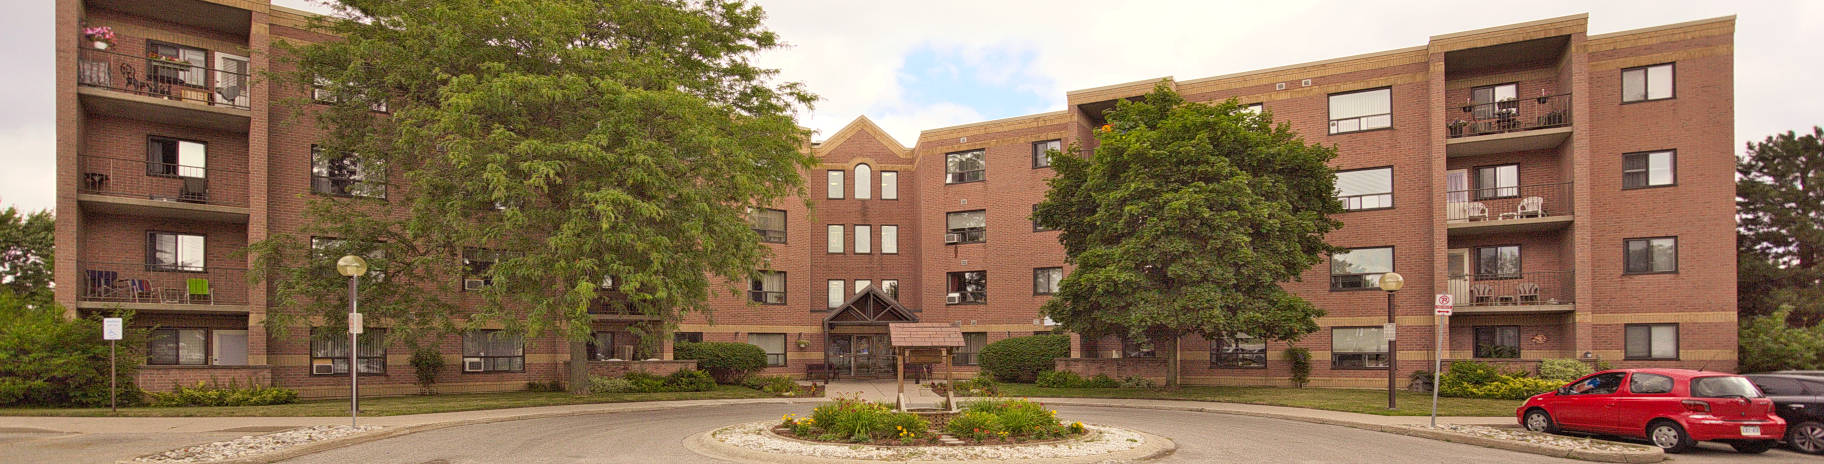 Affordable senior housing london ontario